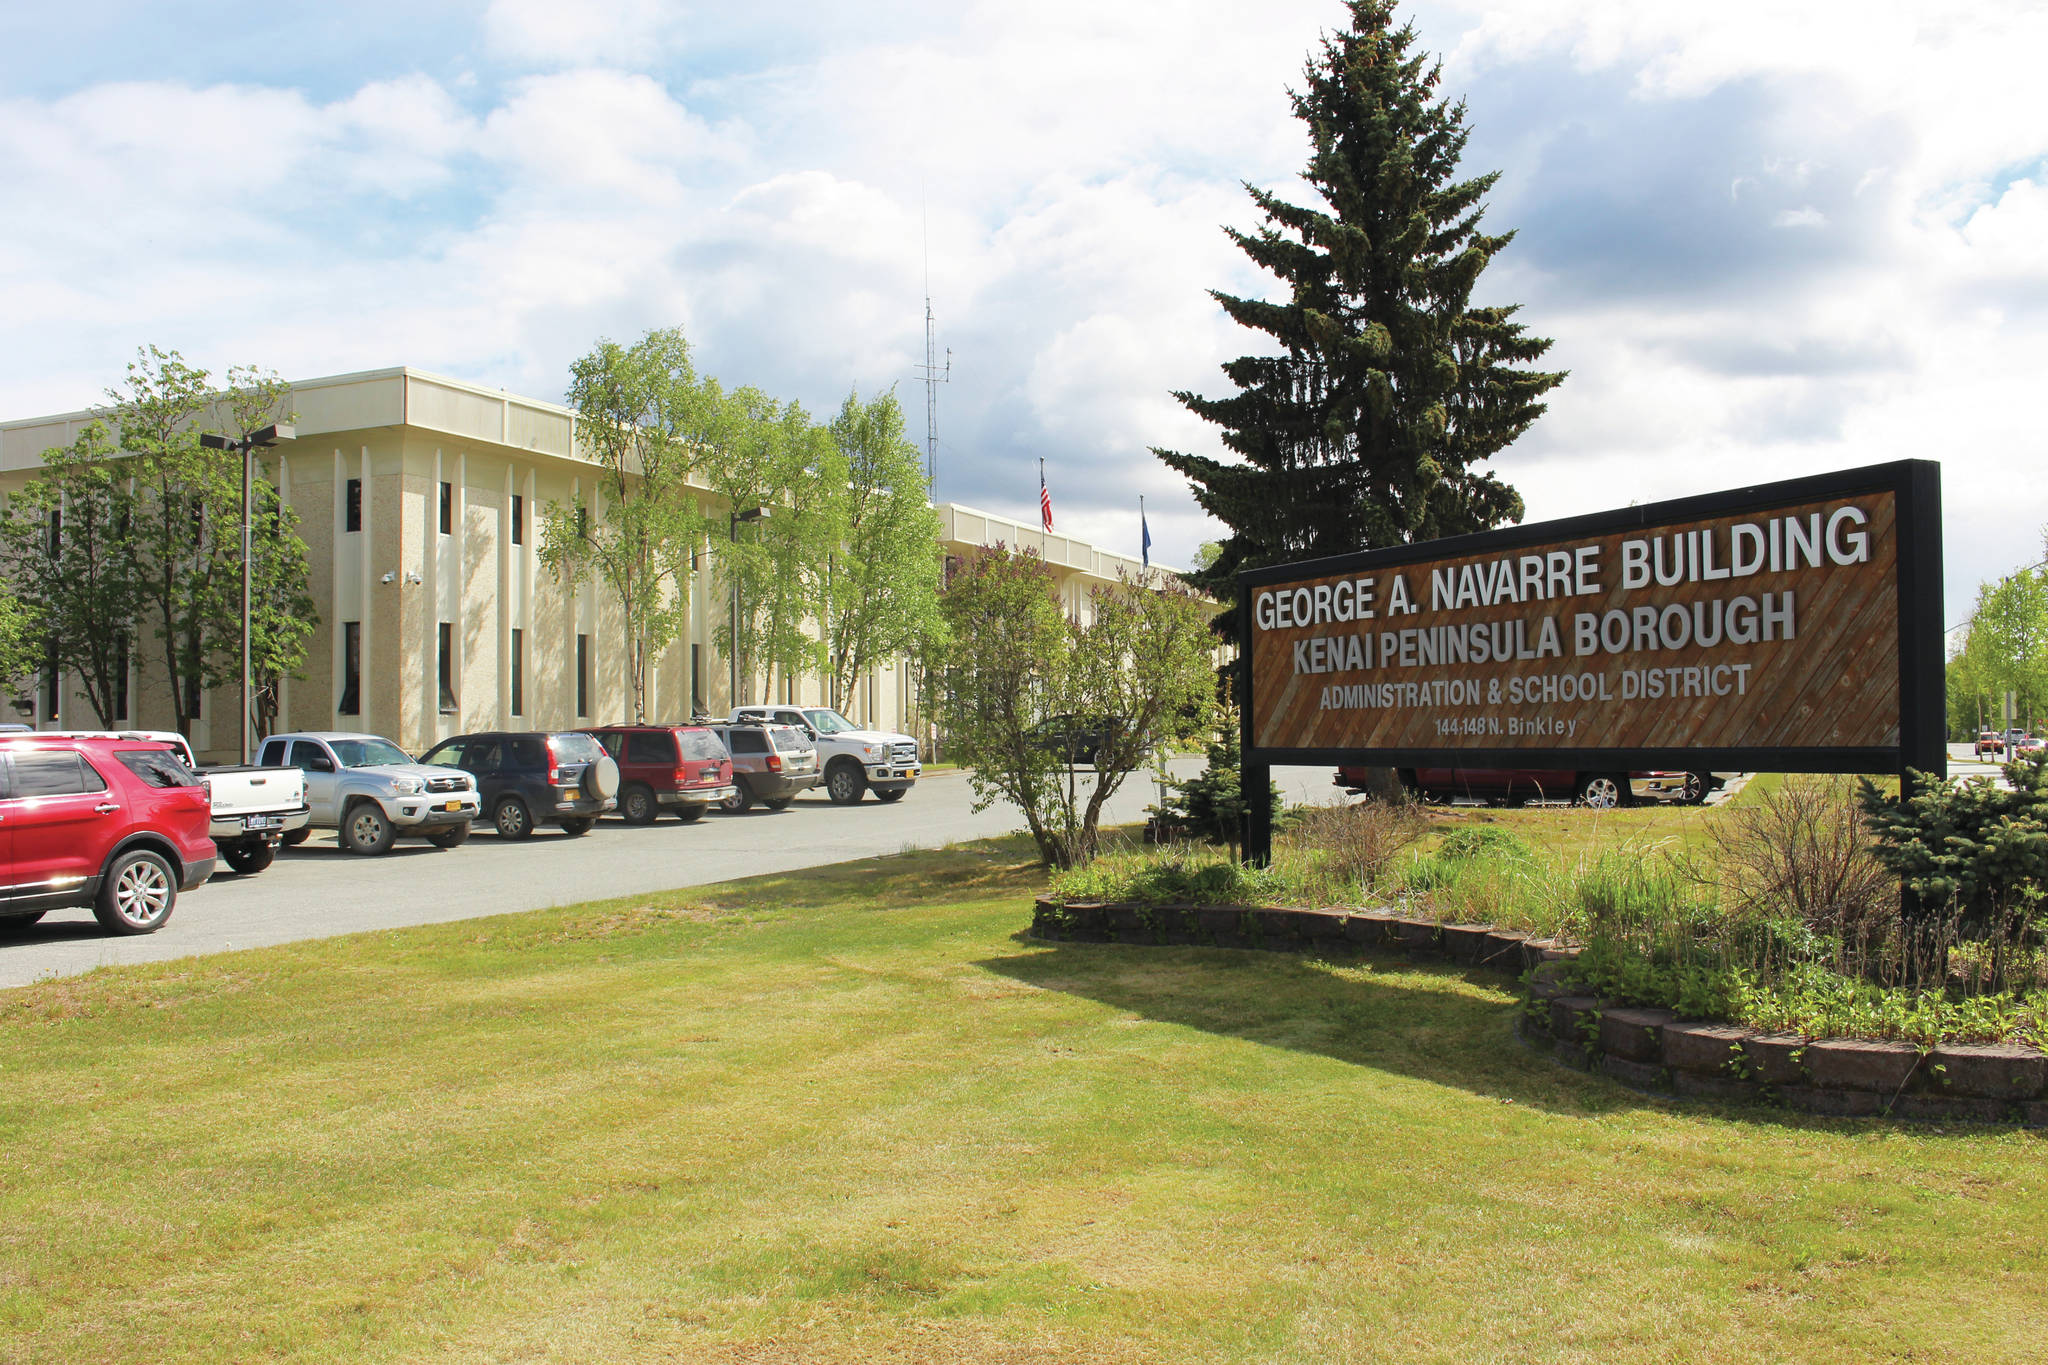 The entrance to the Kenai Peninsula Borough building in Soldotna, Alaska. (Photo by Brian Mazurek/Peninsula Clarion)